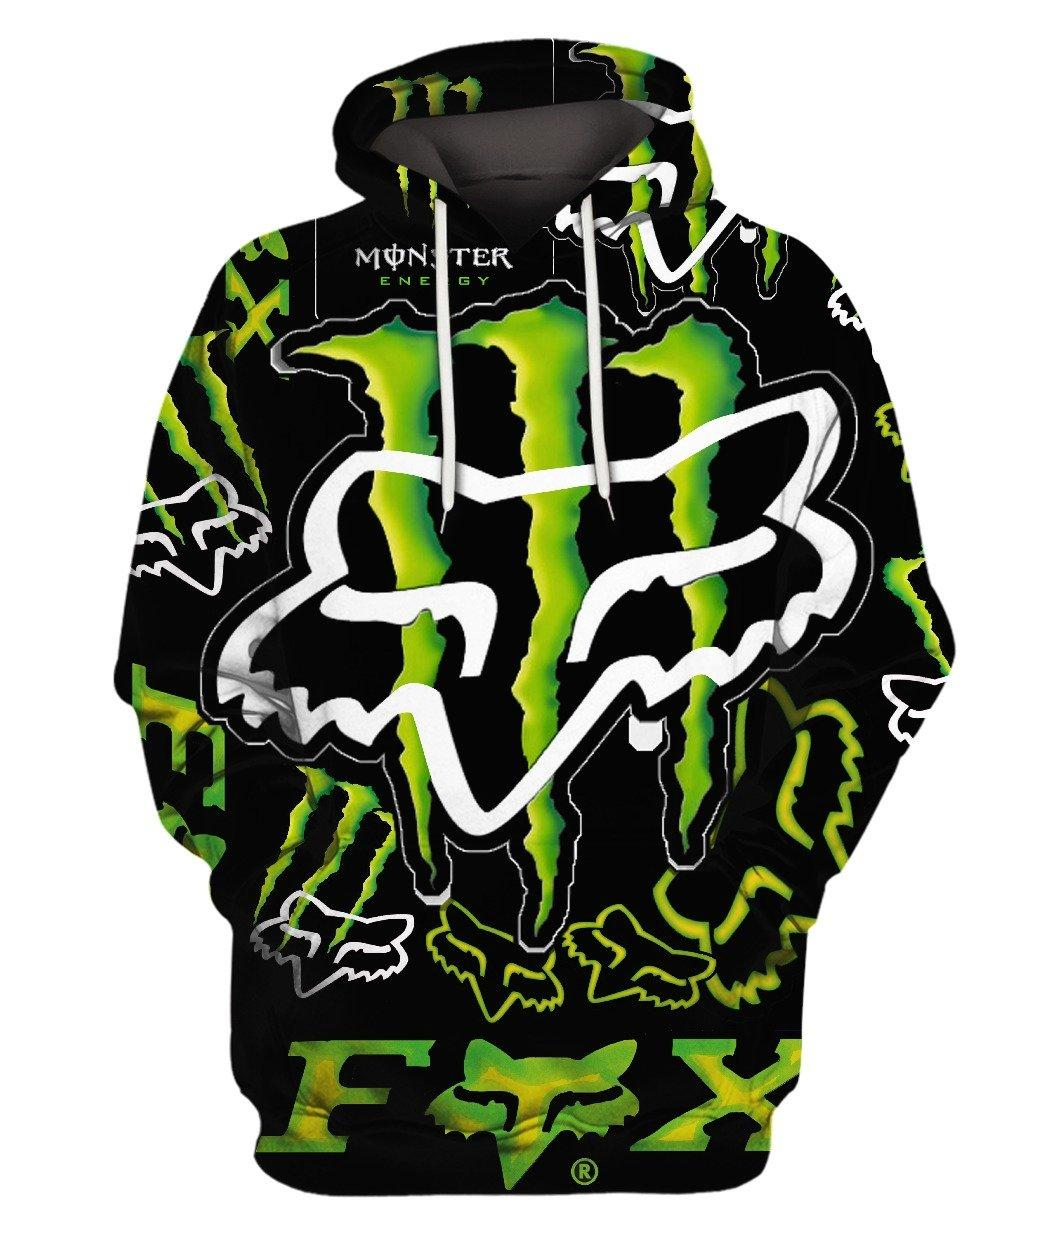 Fox Bike Monster Energy Green 3d Full Print 3d Graphic Printed Tshirt Hoodie Up To 5xl